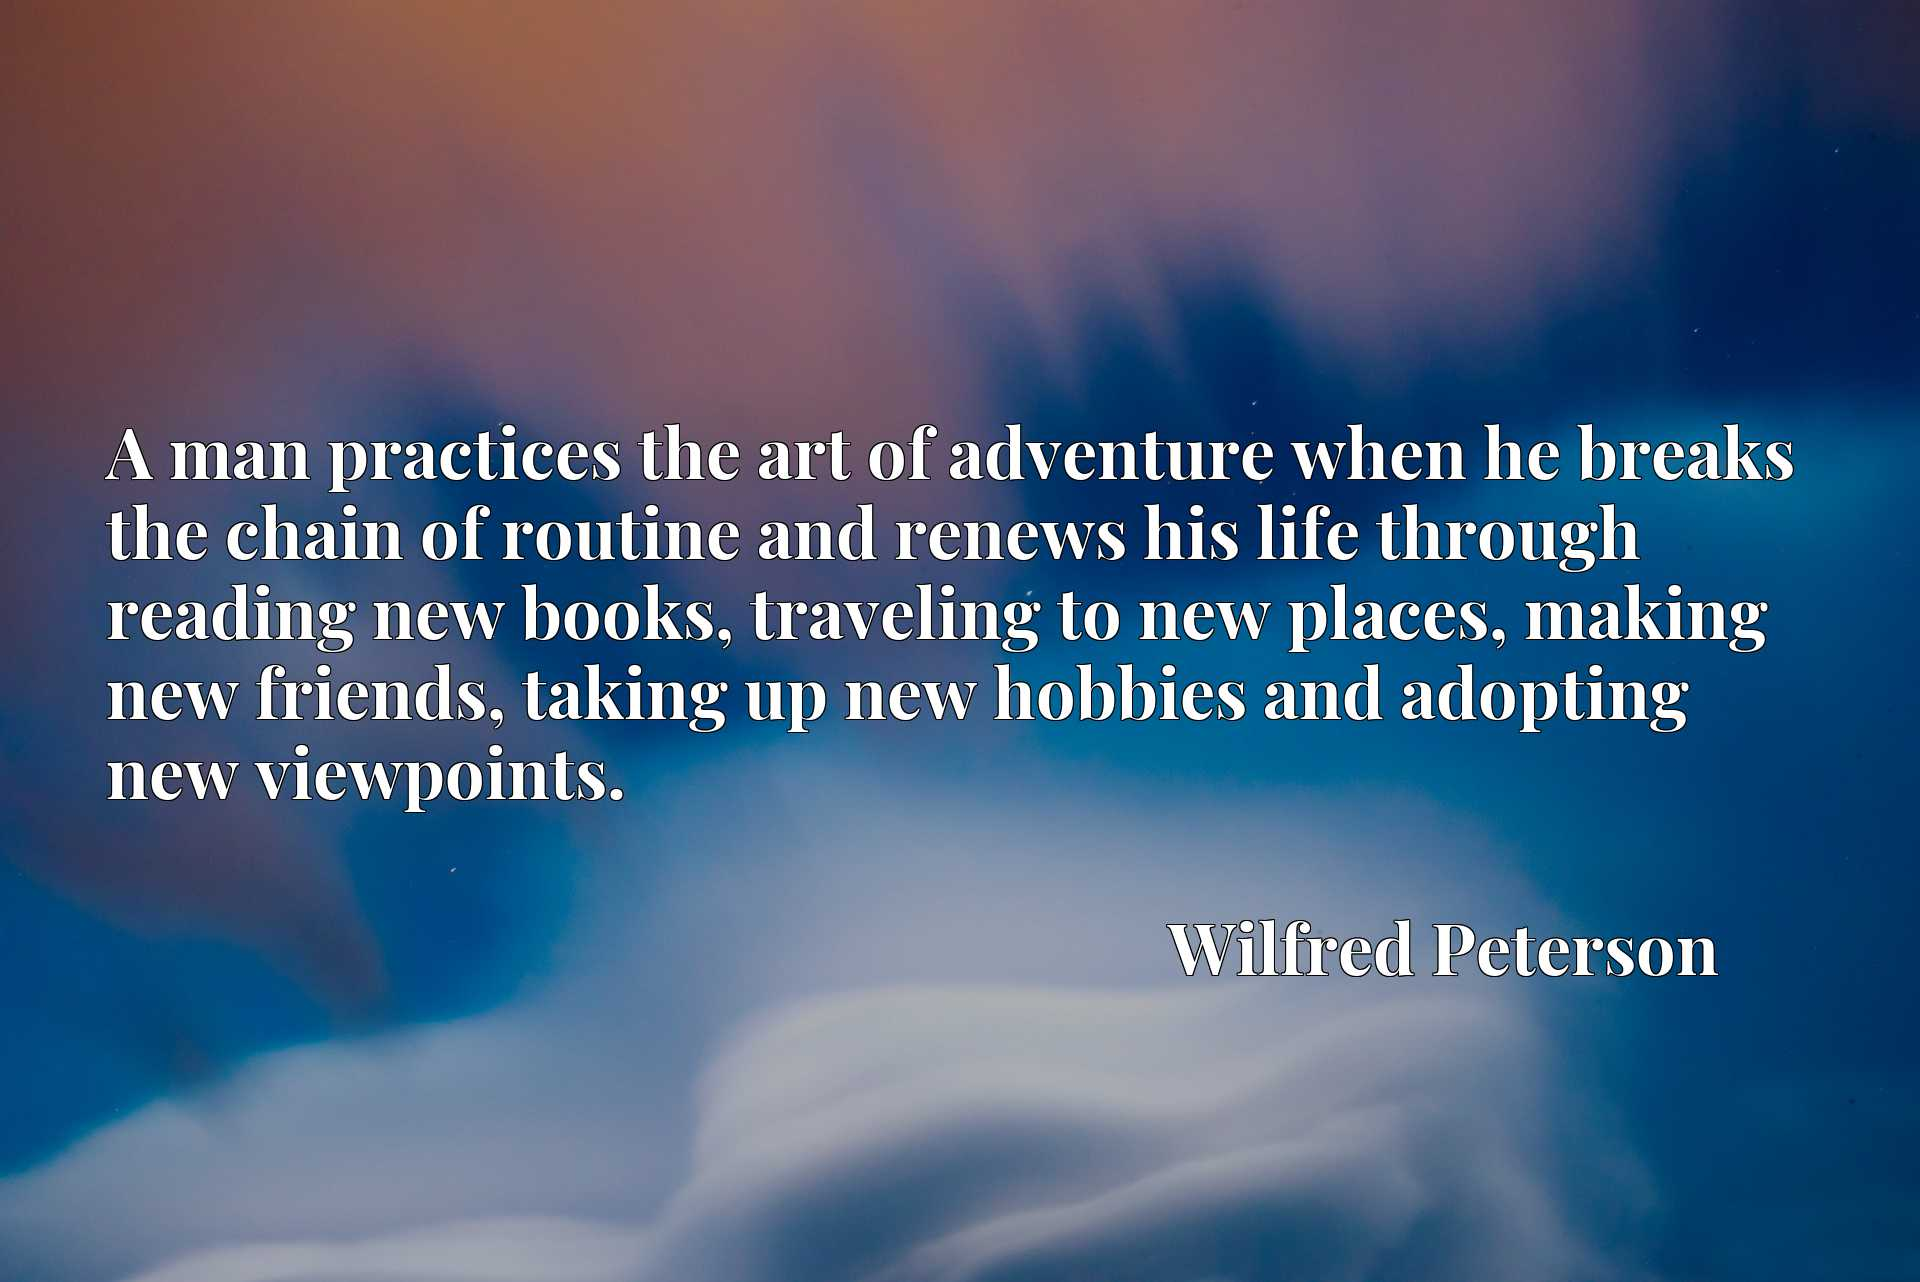 A man practices the art of adventure when he breaks the chain of routine and renews his life through reading new books, traveling to new places, making new friends, taking up new hobbies and adopting new viewpoints.